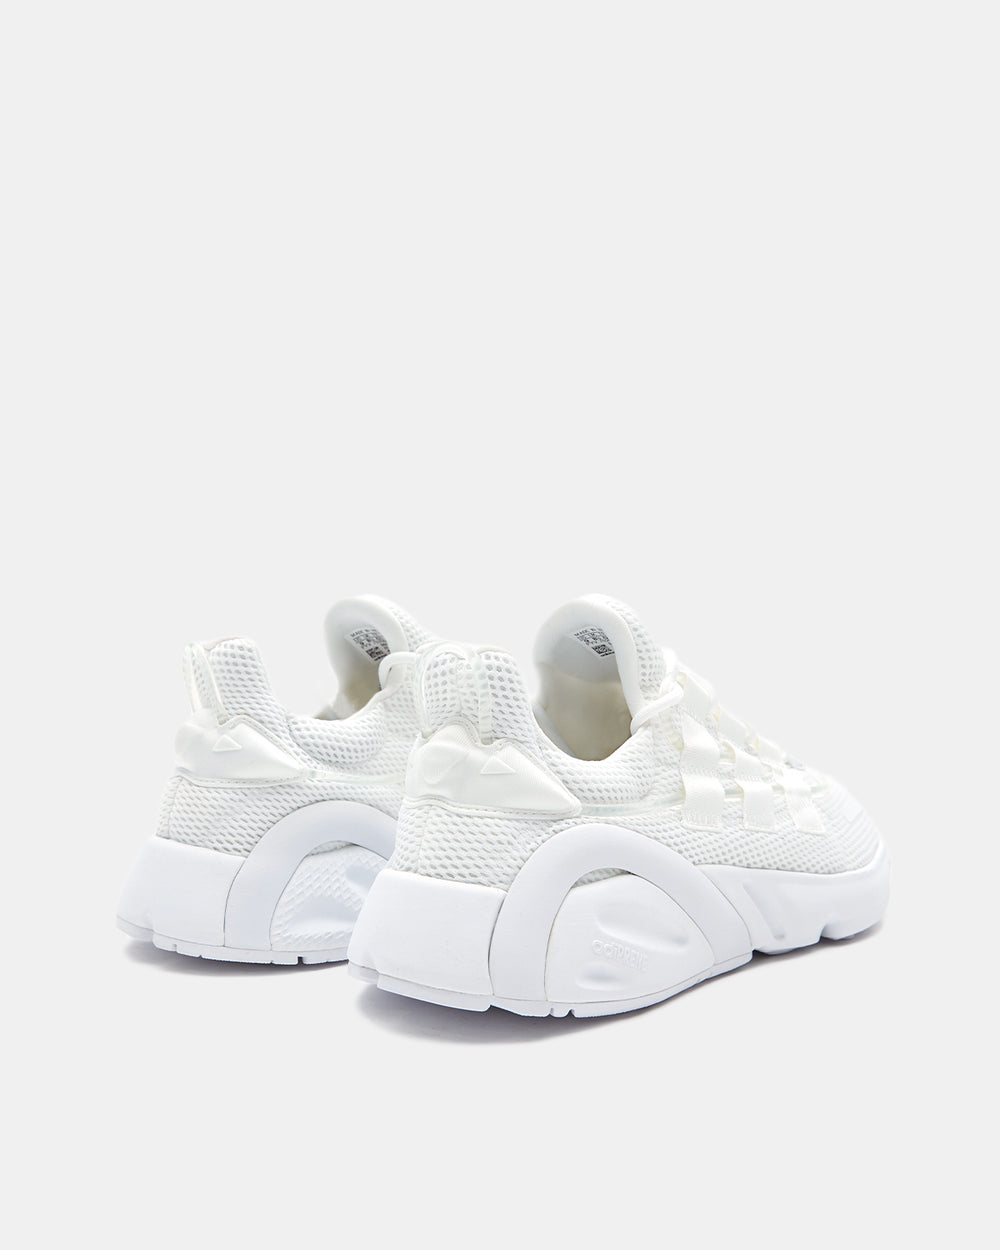 adidas - LX Con (Cloud White | Core Black)